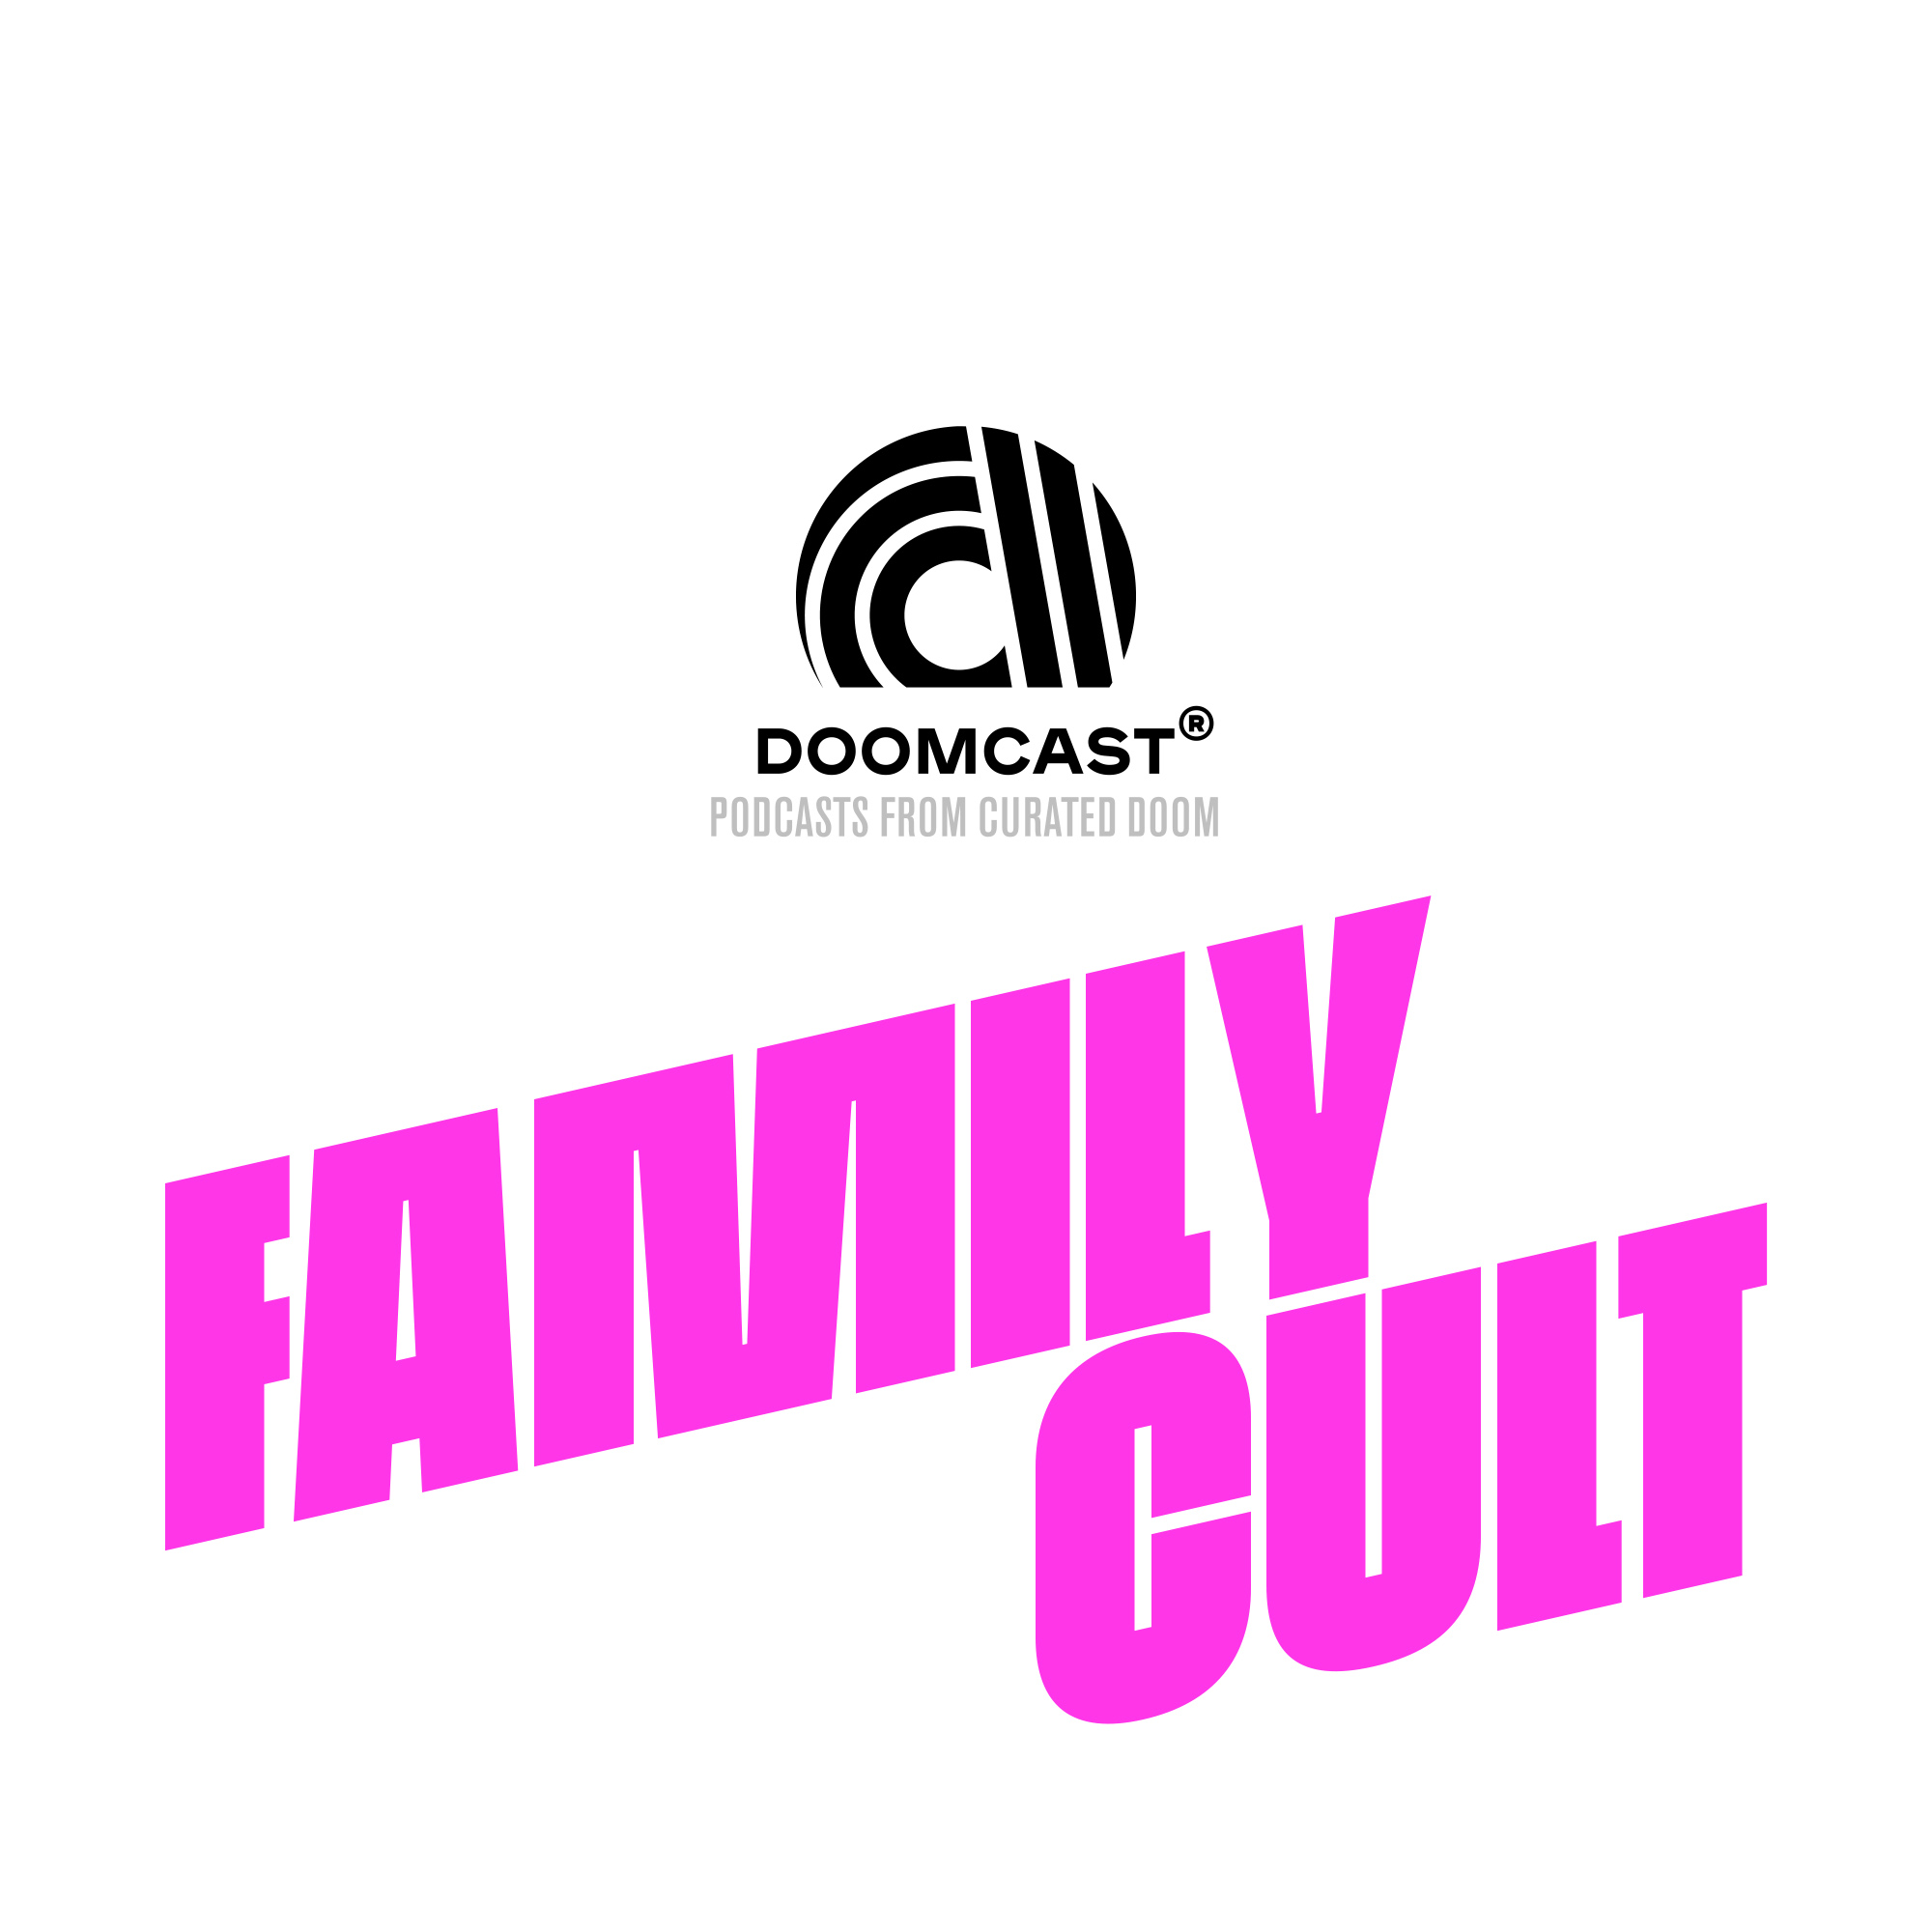 DOOMCAST - Family Cult - NYC 2000x2000.jpg